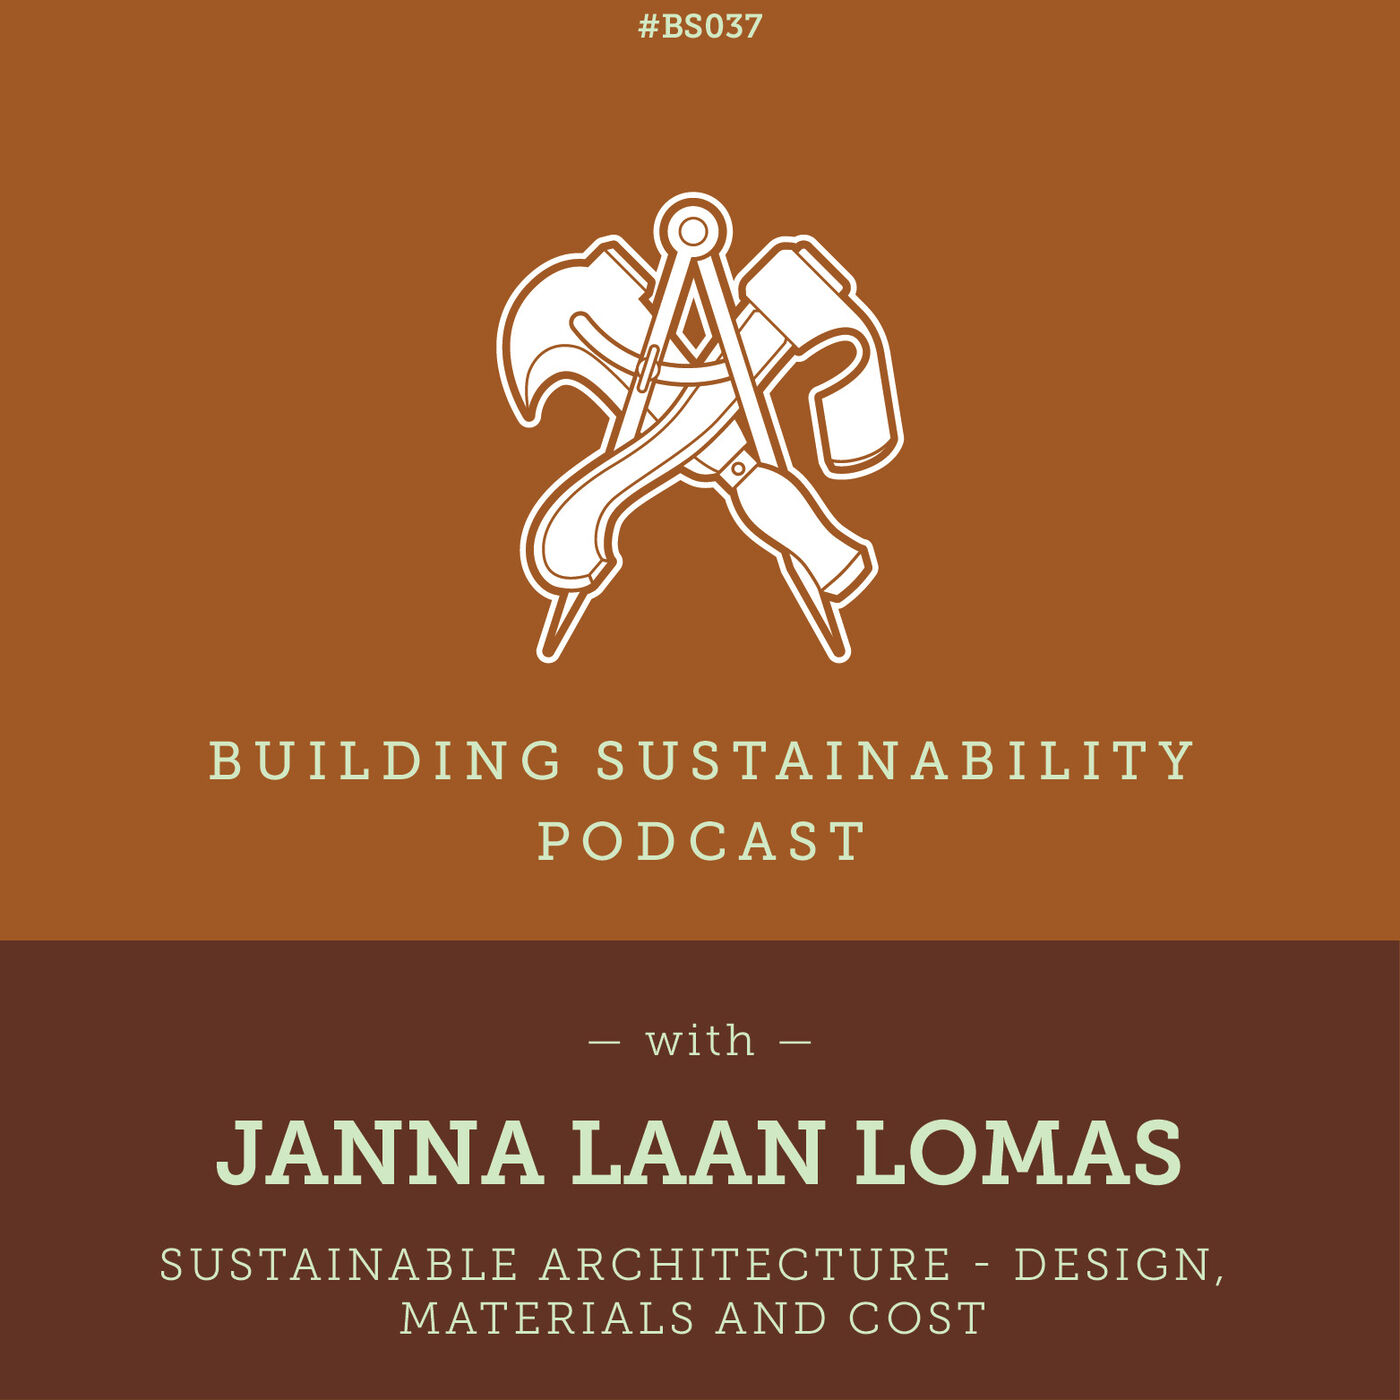 Sustainable architecture - Design, Materials and Cost - Janna Laan Lomas - BS037